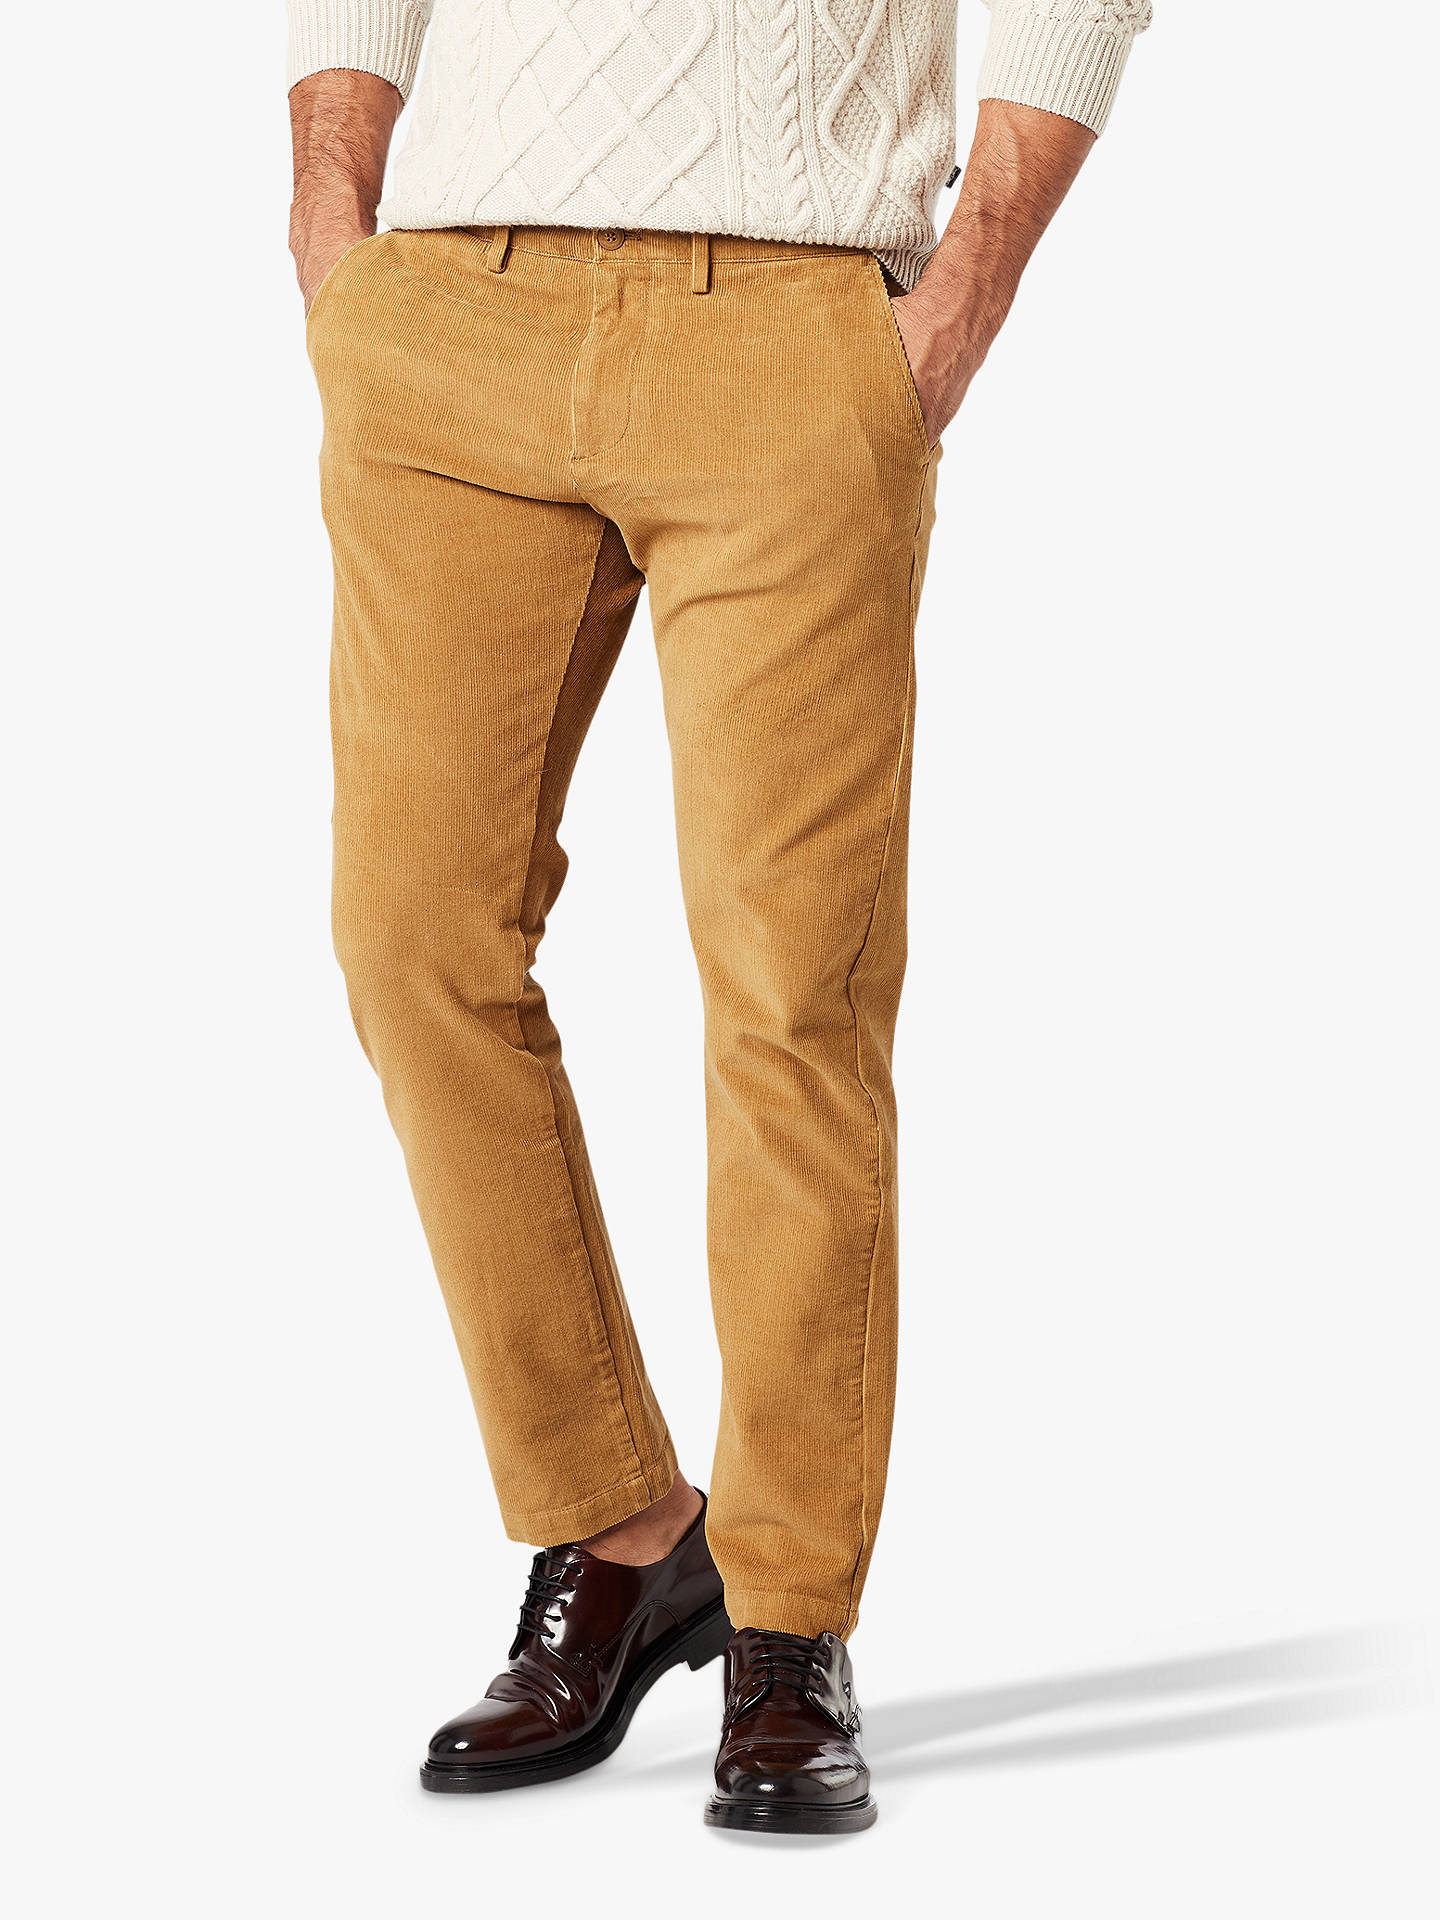 Buy Dockers Smart 360 Flex Slim Corduroy Chinos, Dull Gold, 36L Online at johnlewis.com